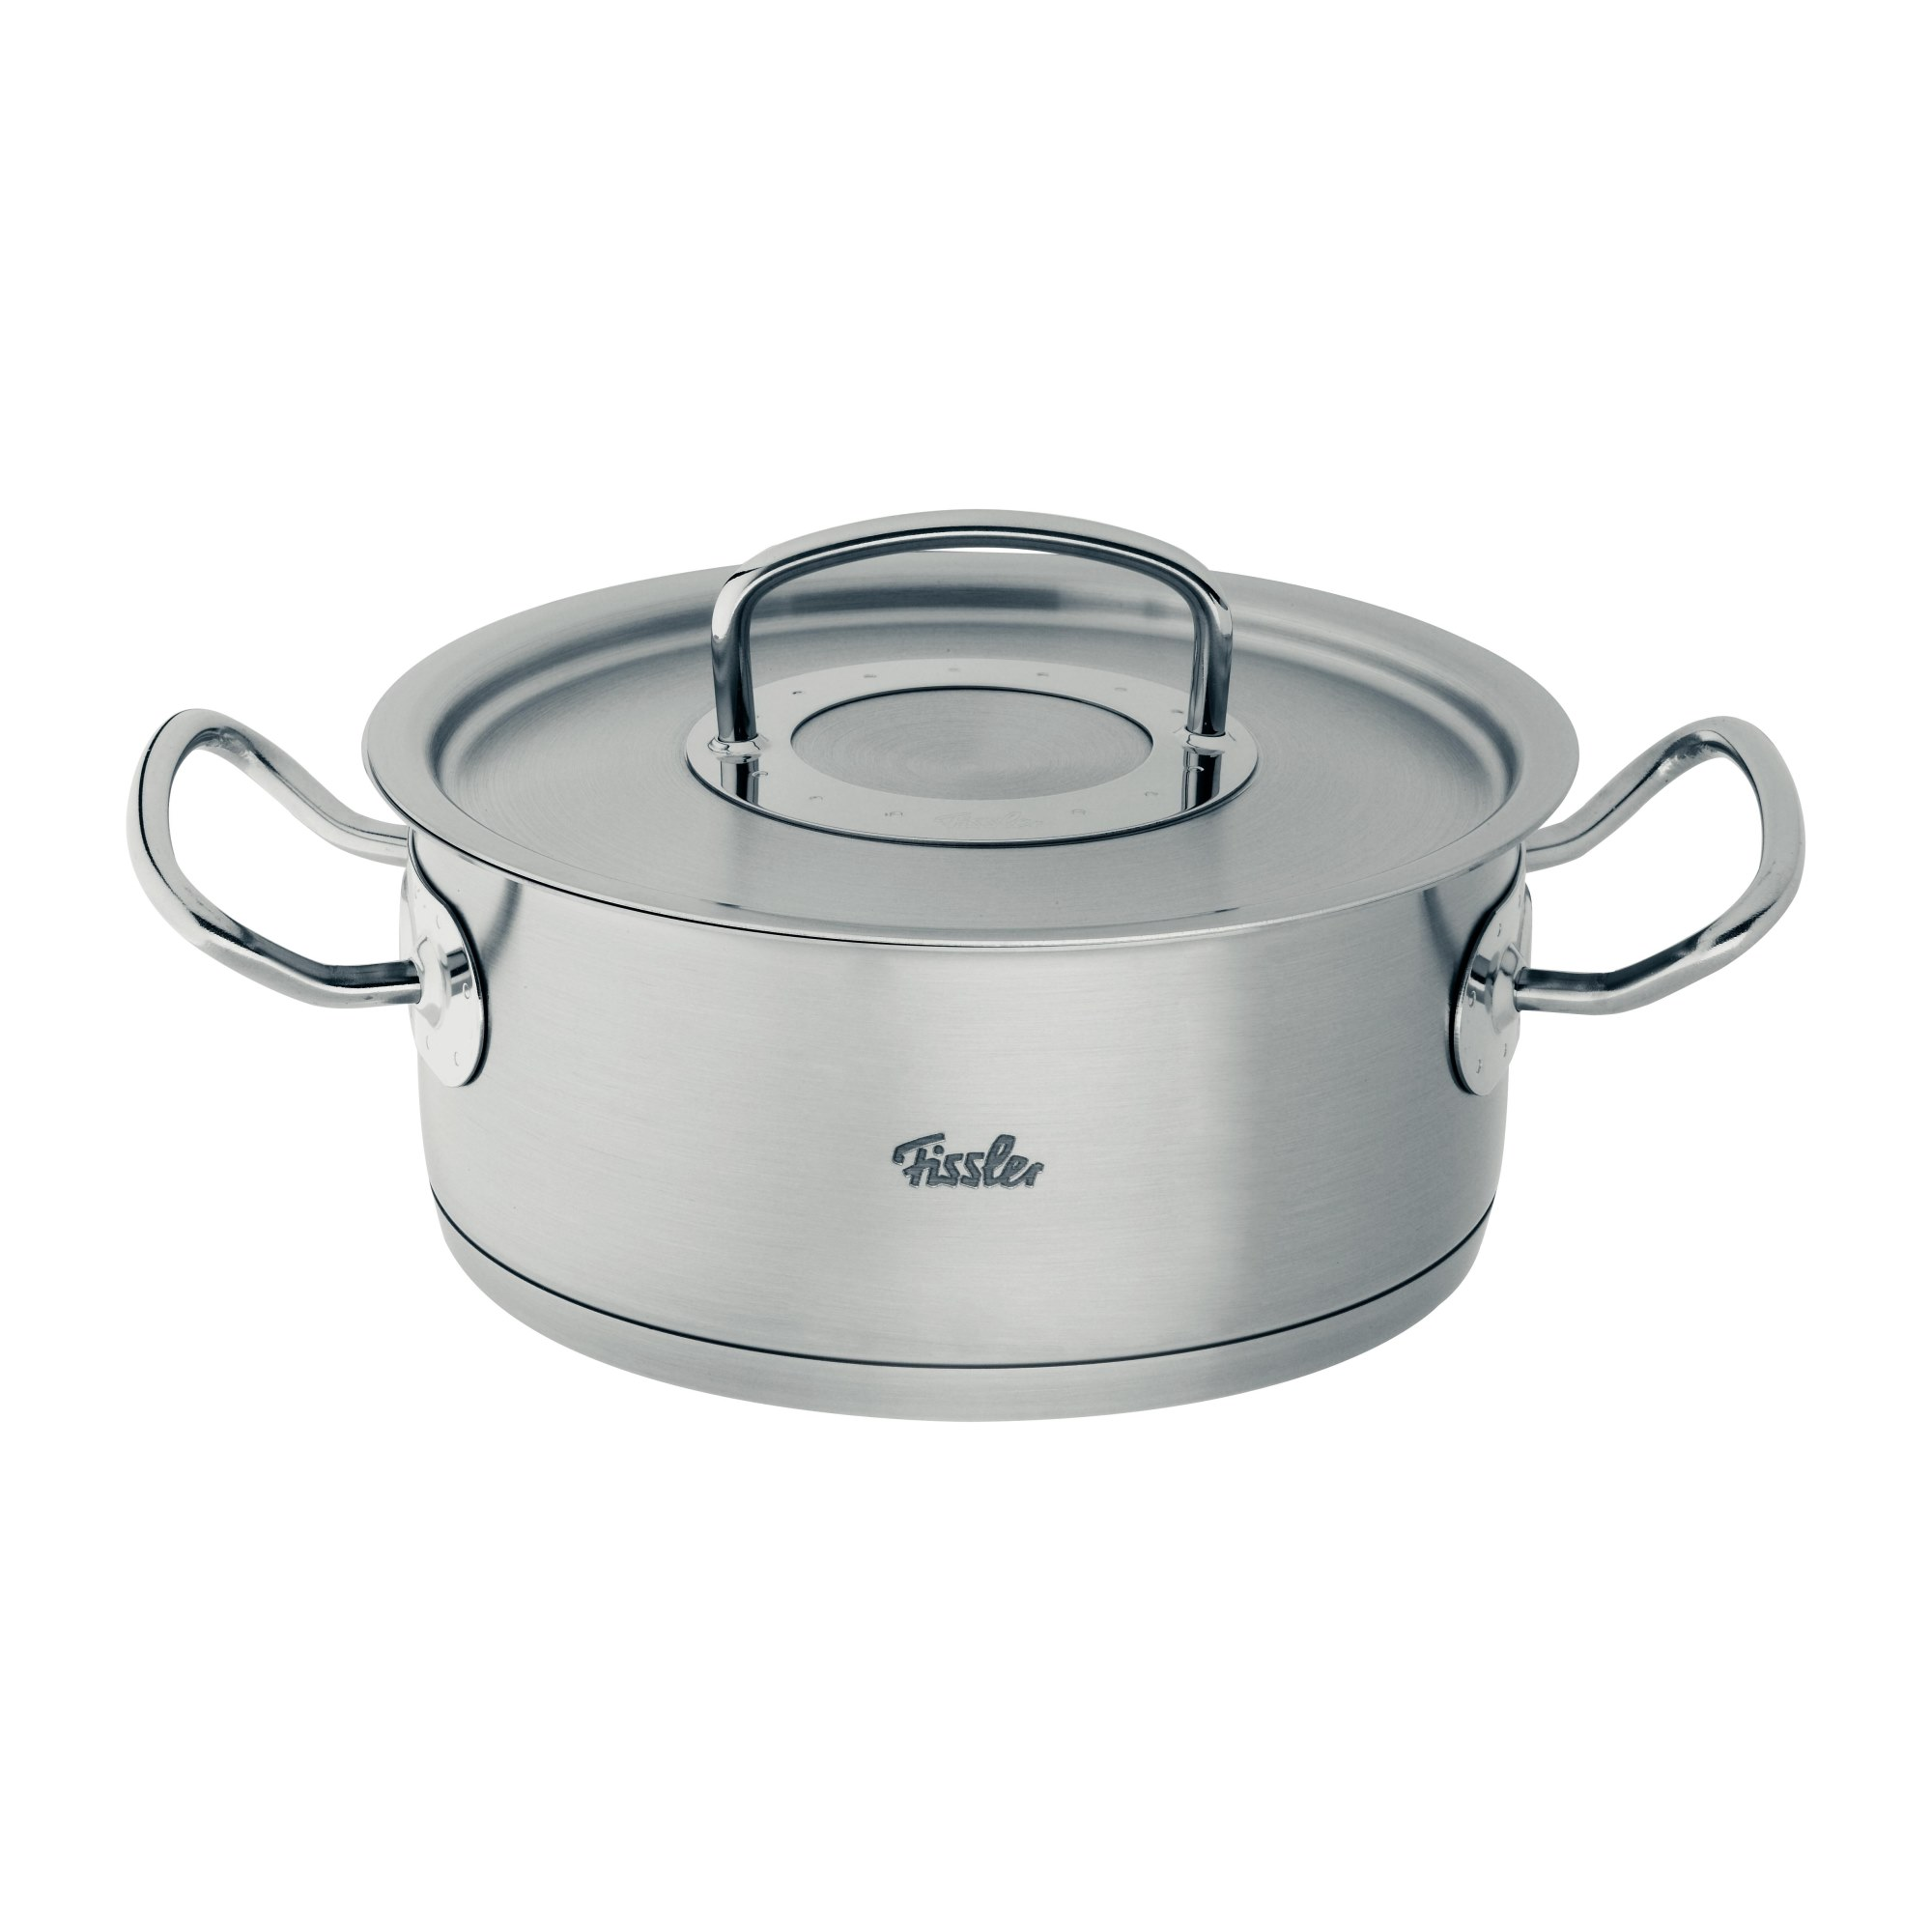 Fissler Profi Collection Set Fissler Profi Collection Topfset Fissler Topfset 5 Tlg